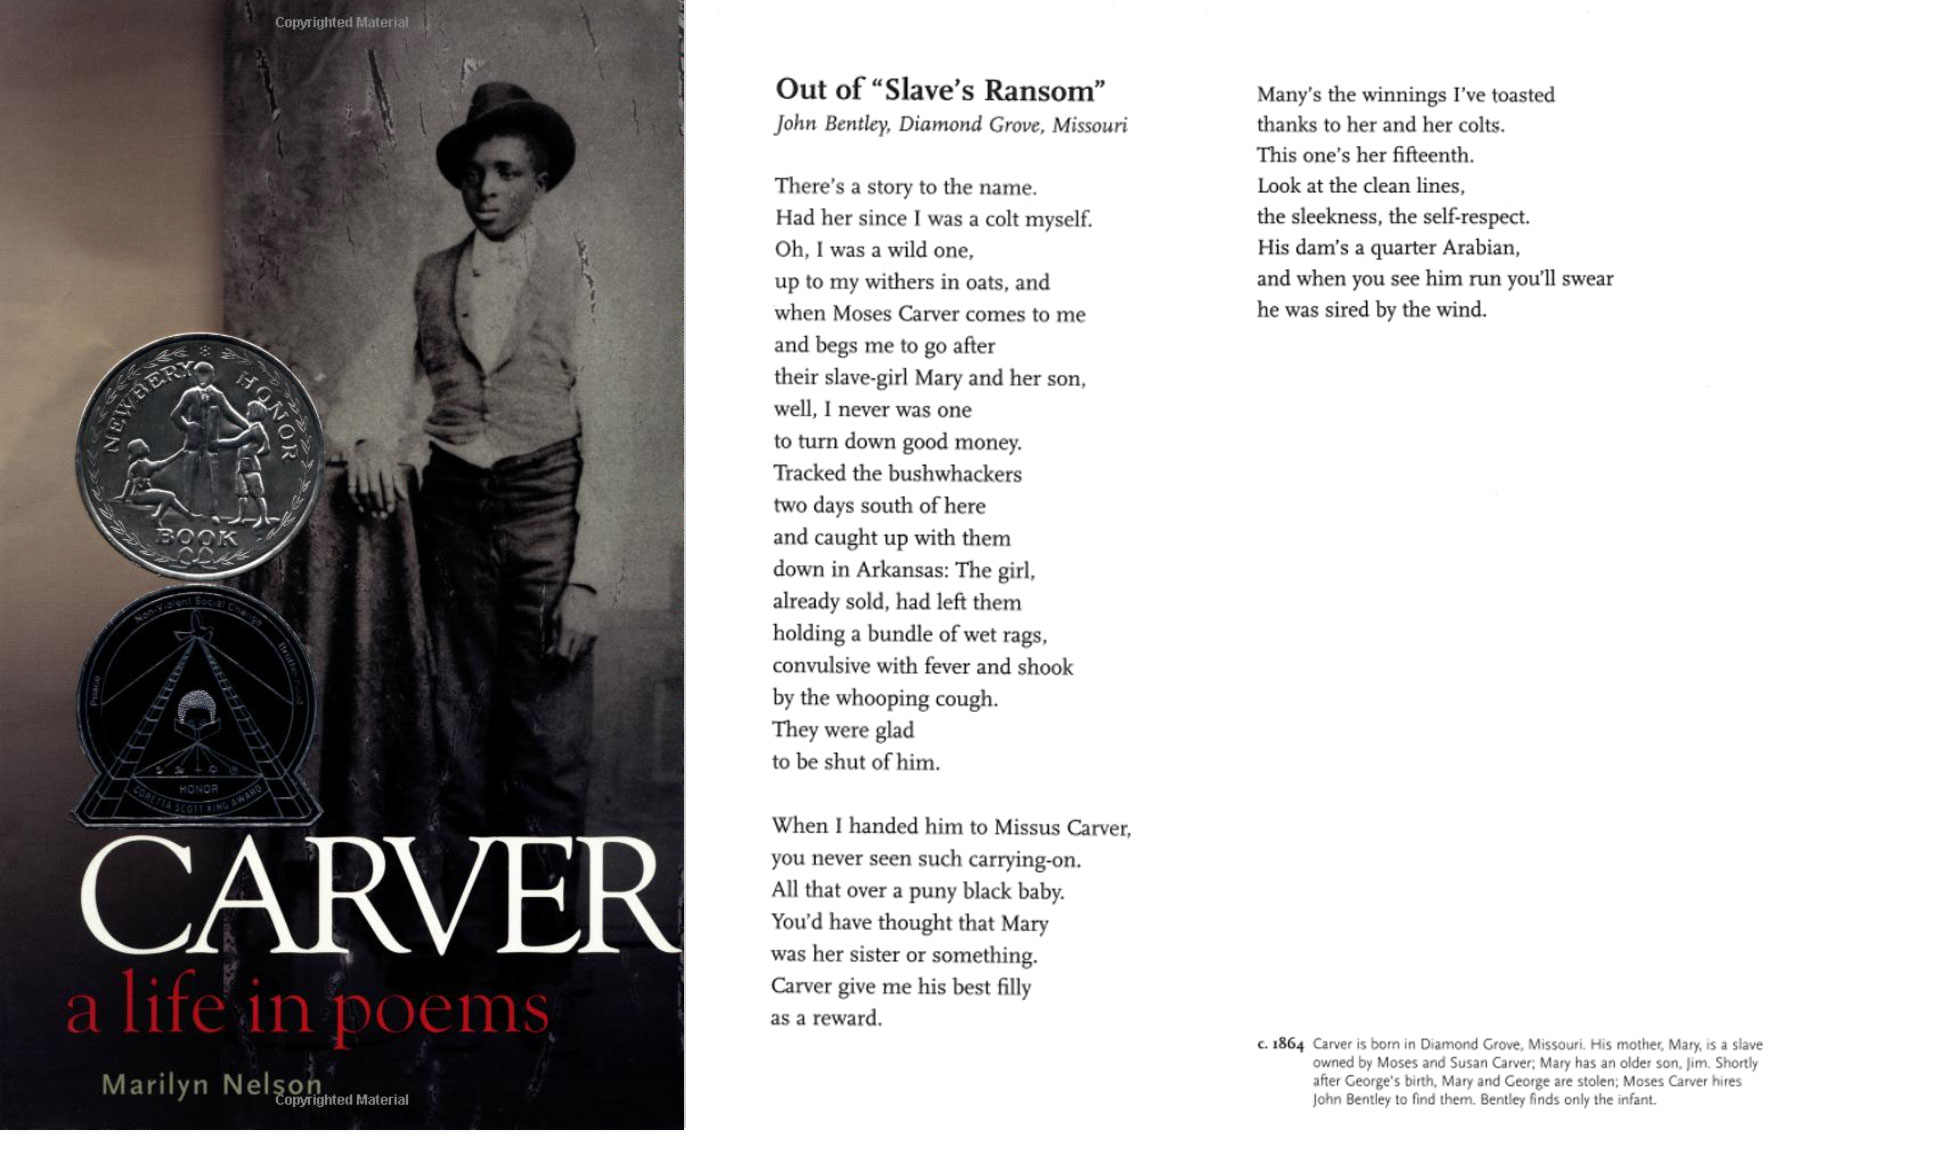 carver a life in poems summary